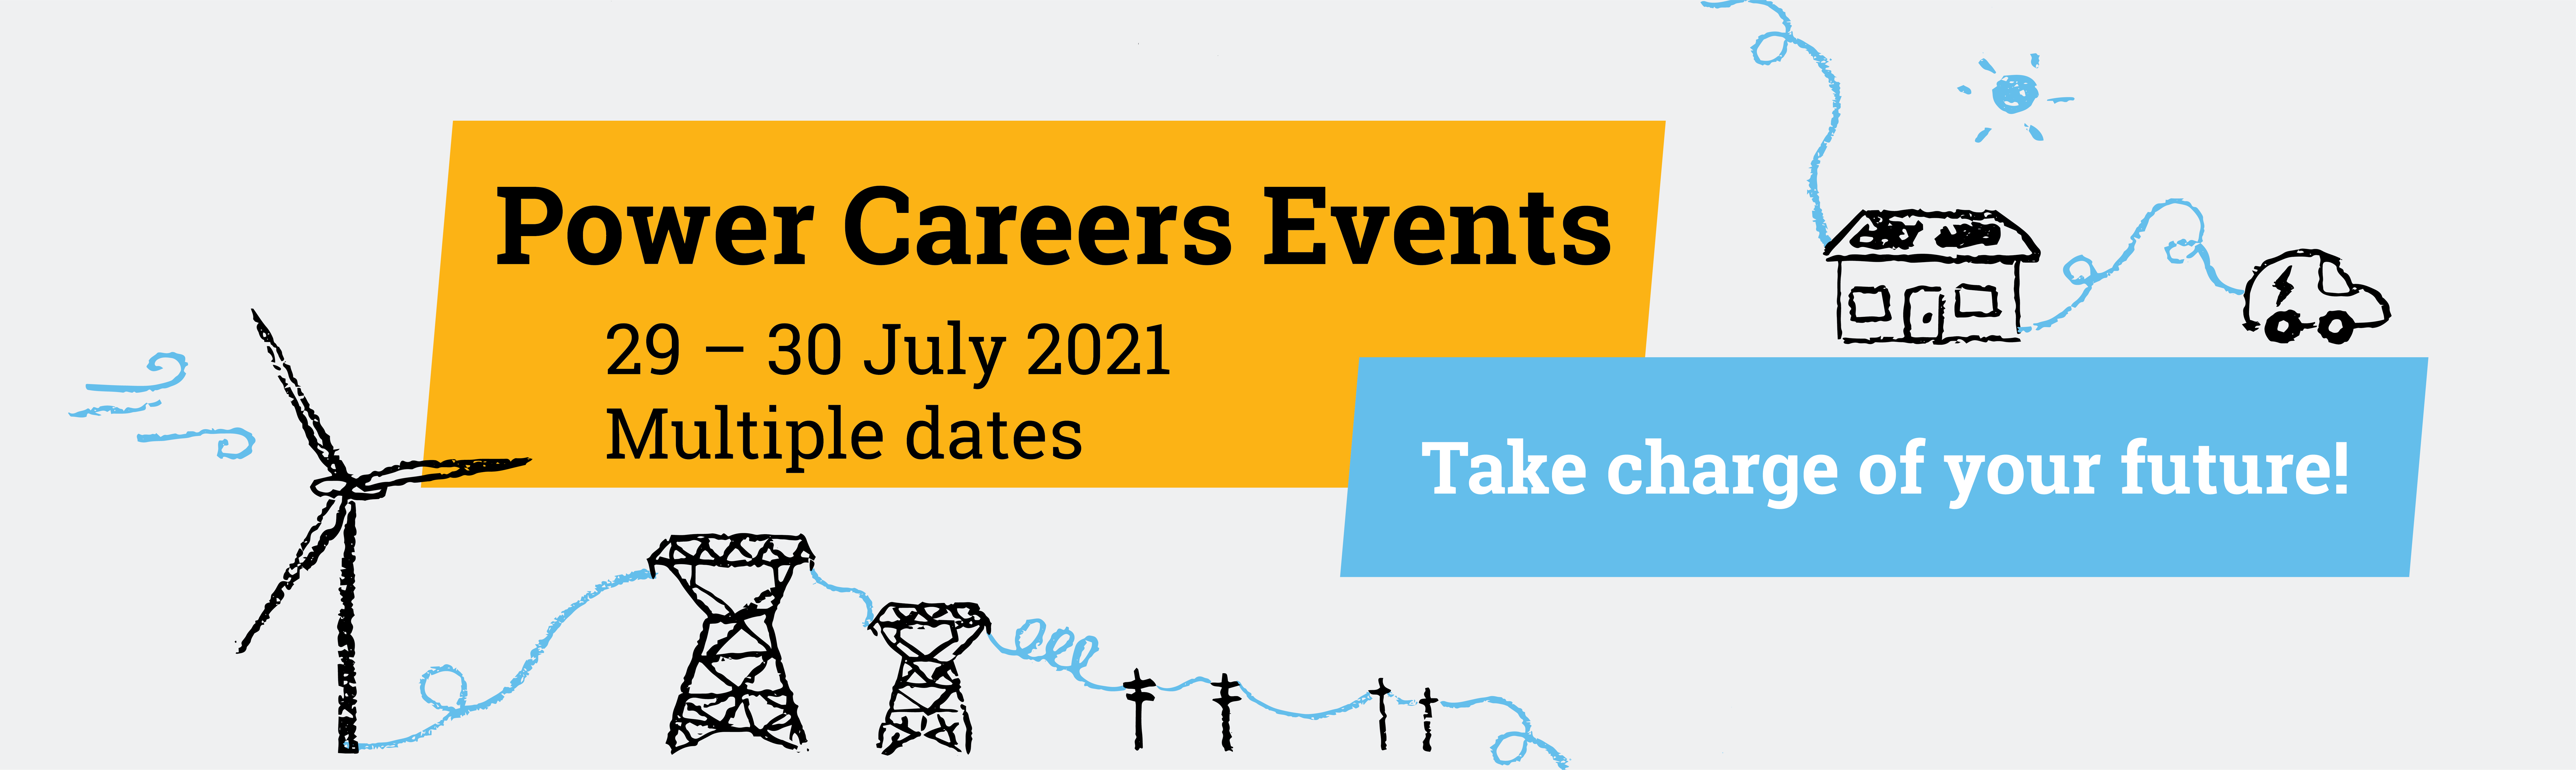 2021 Power Careers Event